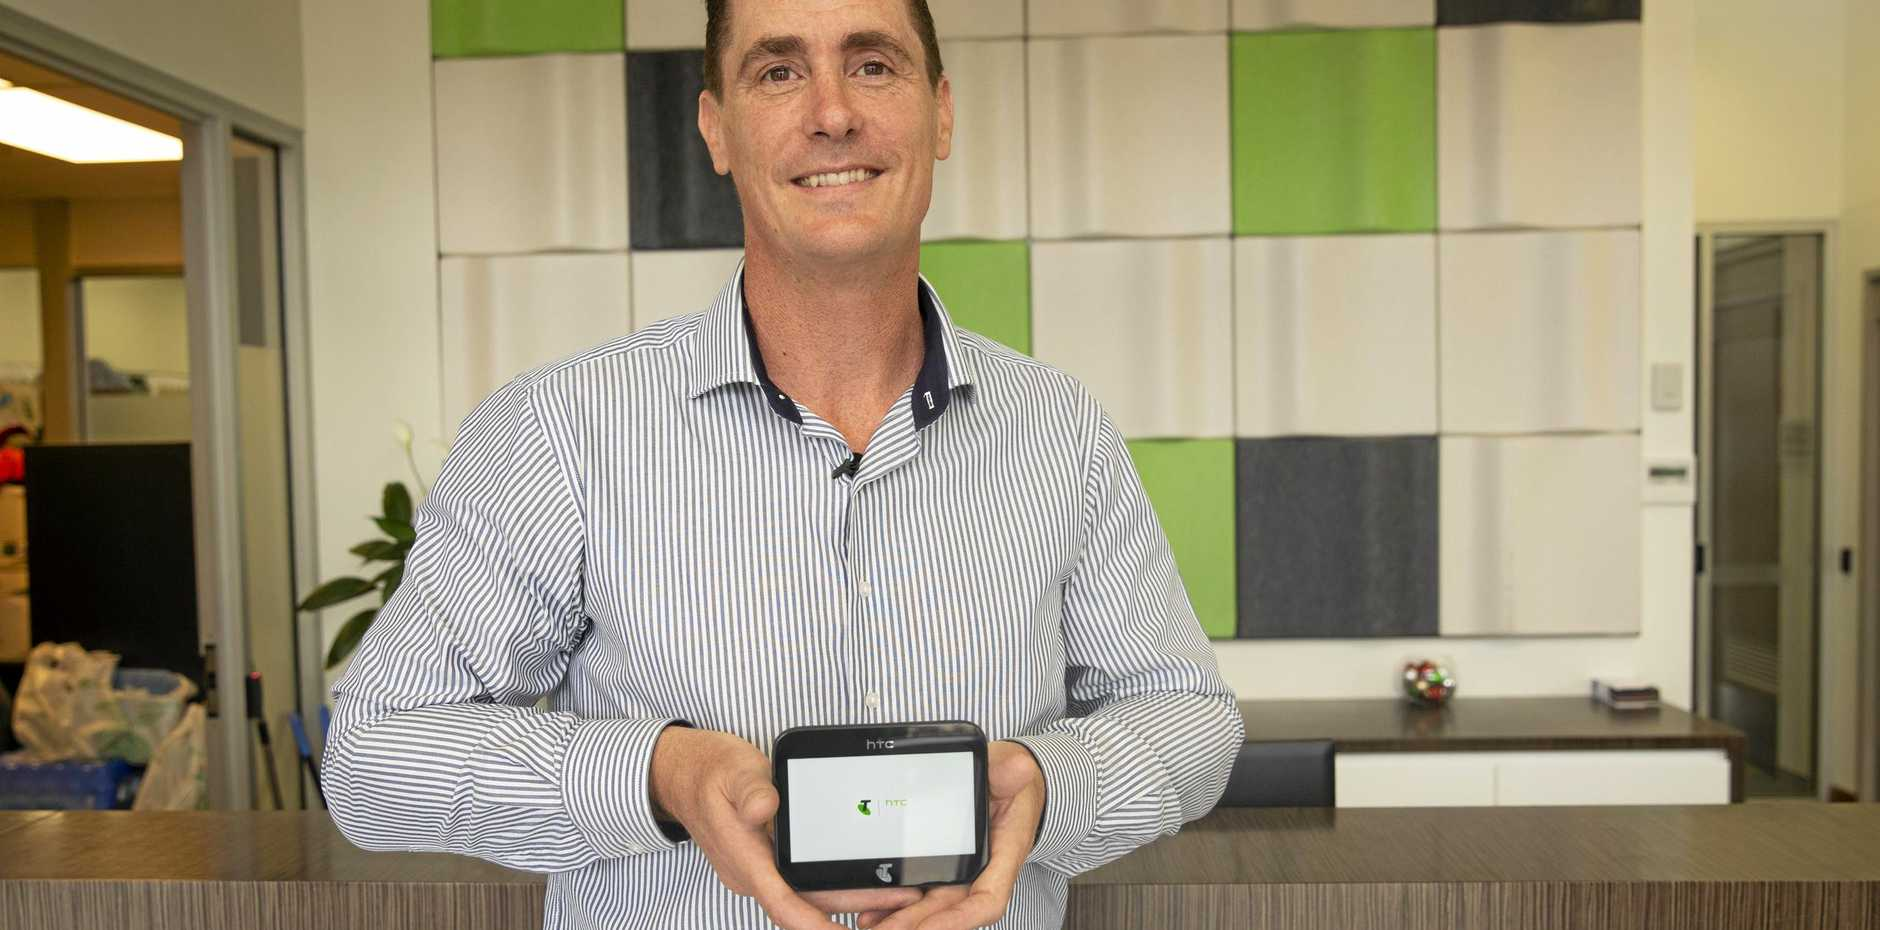 TECHNOLOGY: FKG Group CEO of Digital Innovation and Energy Grant Statton with the new 5G device.